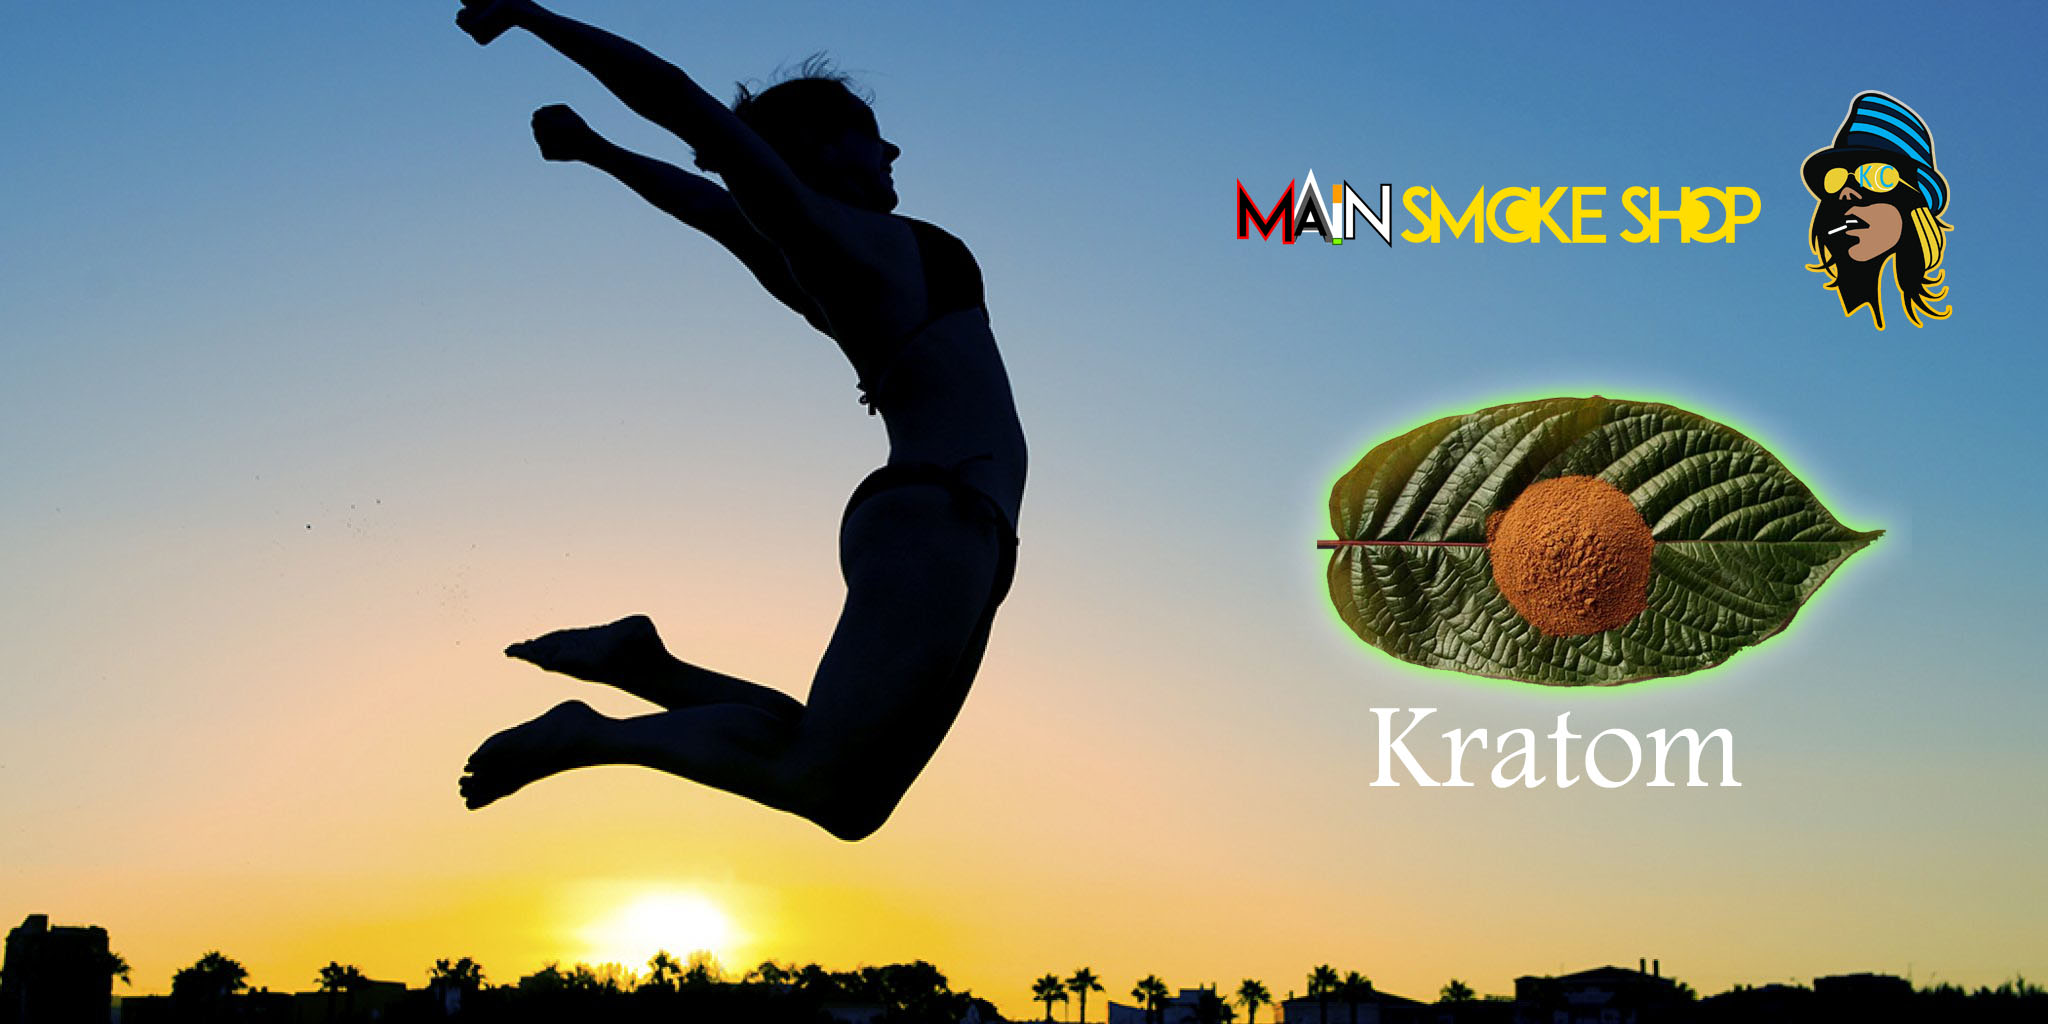 kratom is boost energy